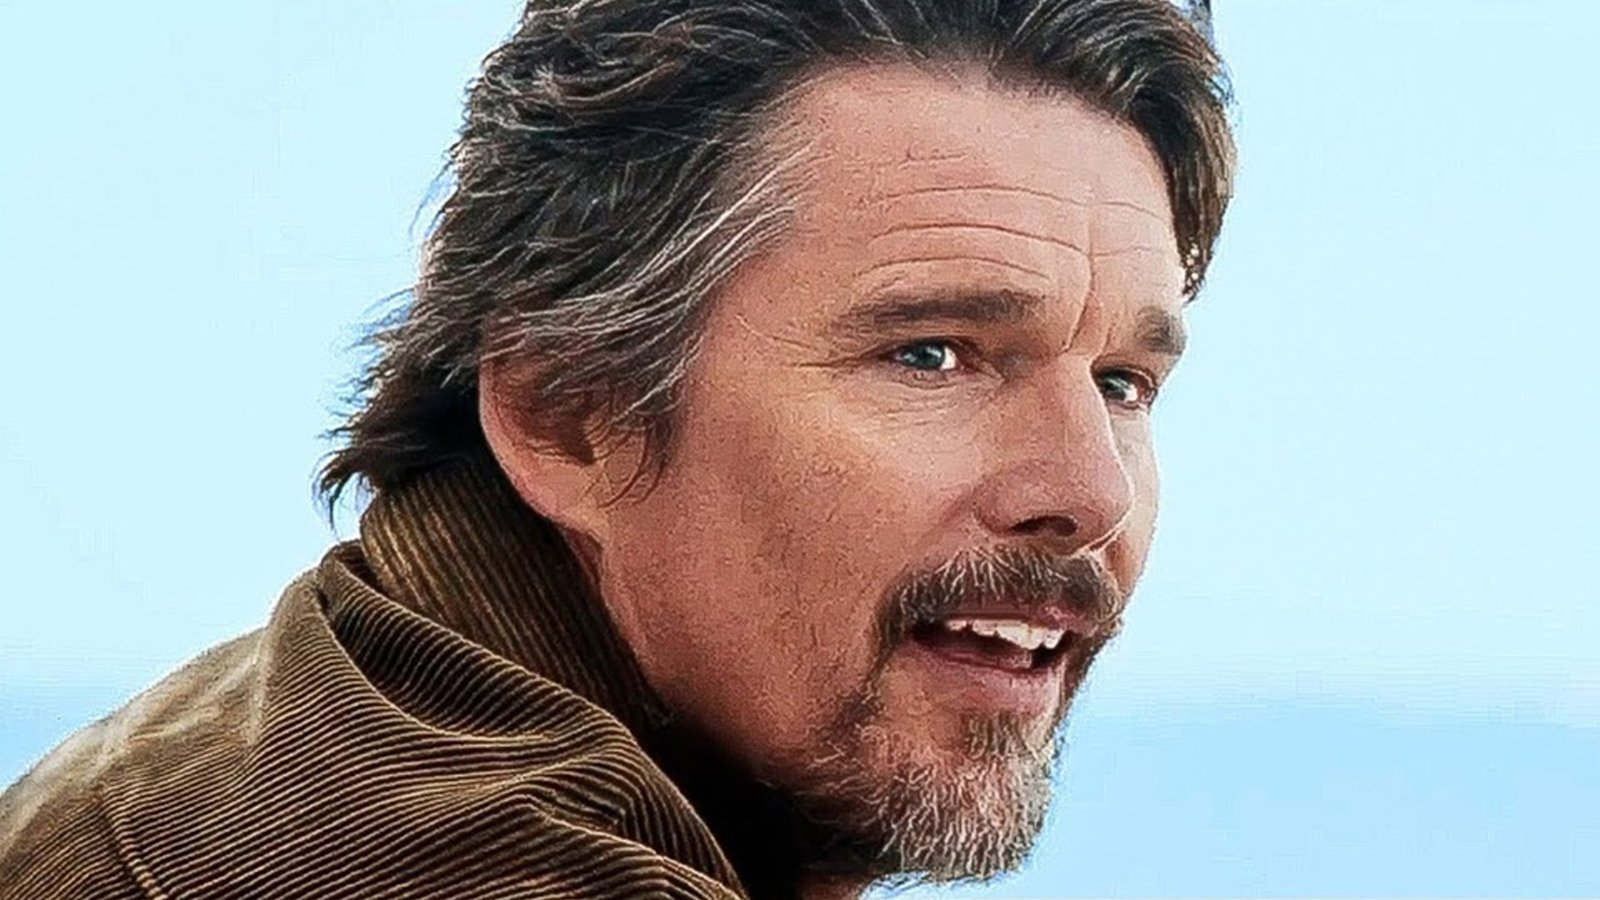 ethan hawke knives out 2 ponytail photos